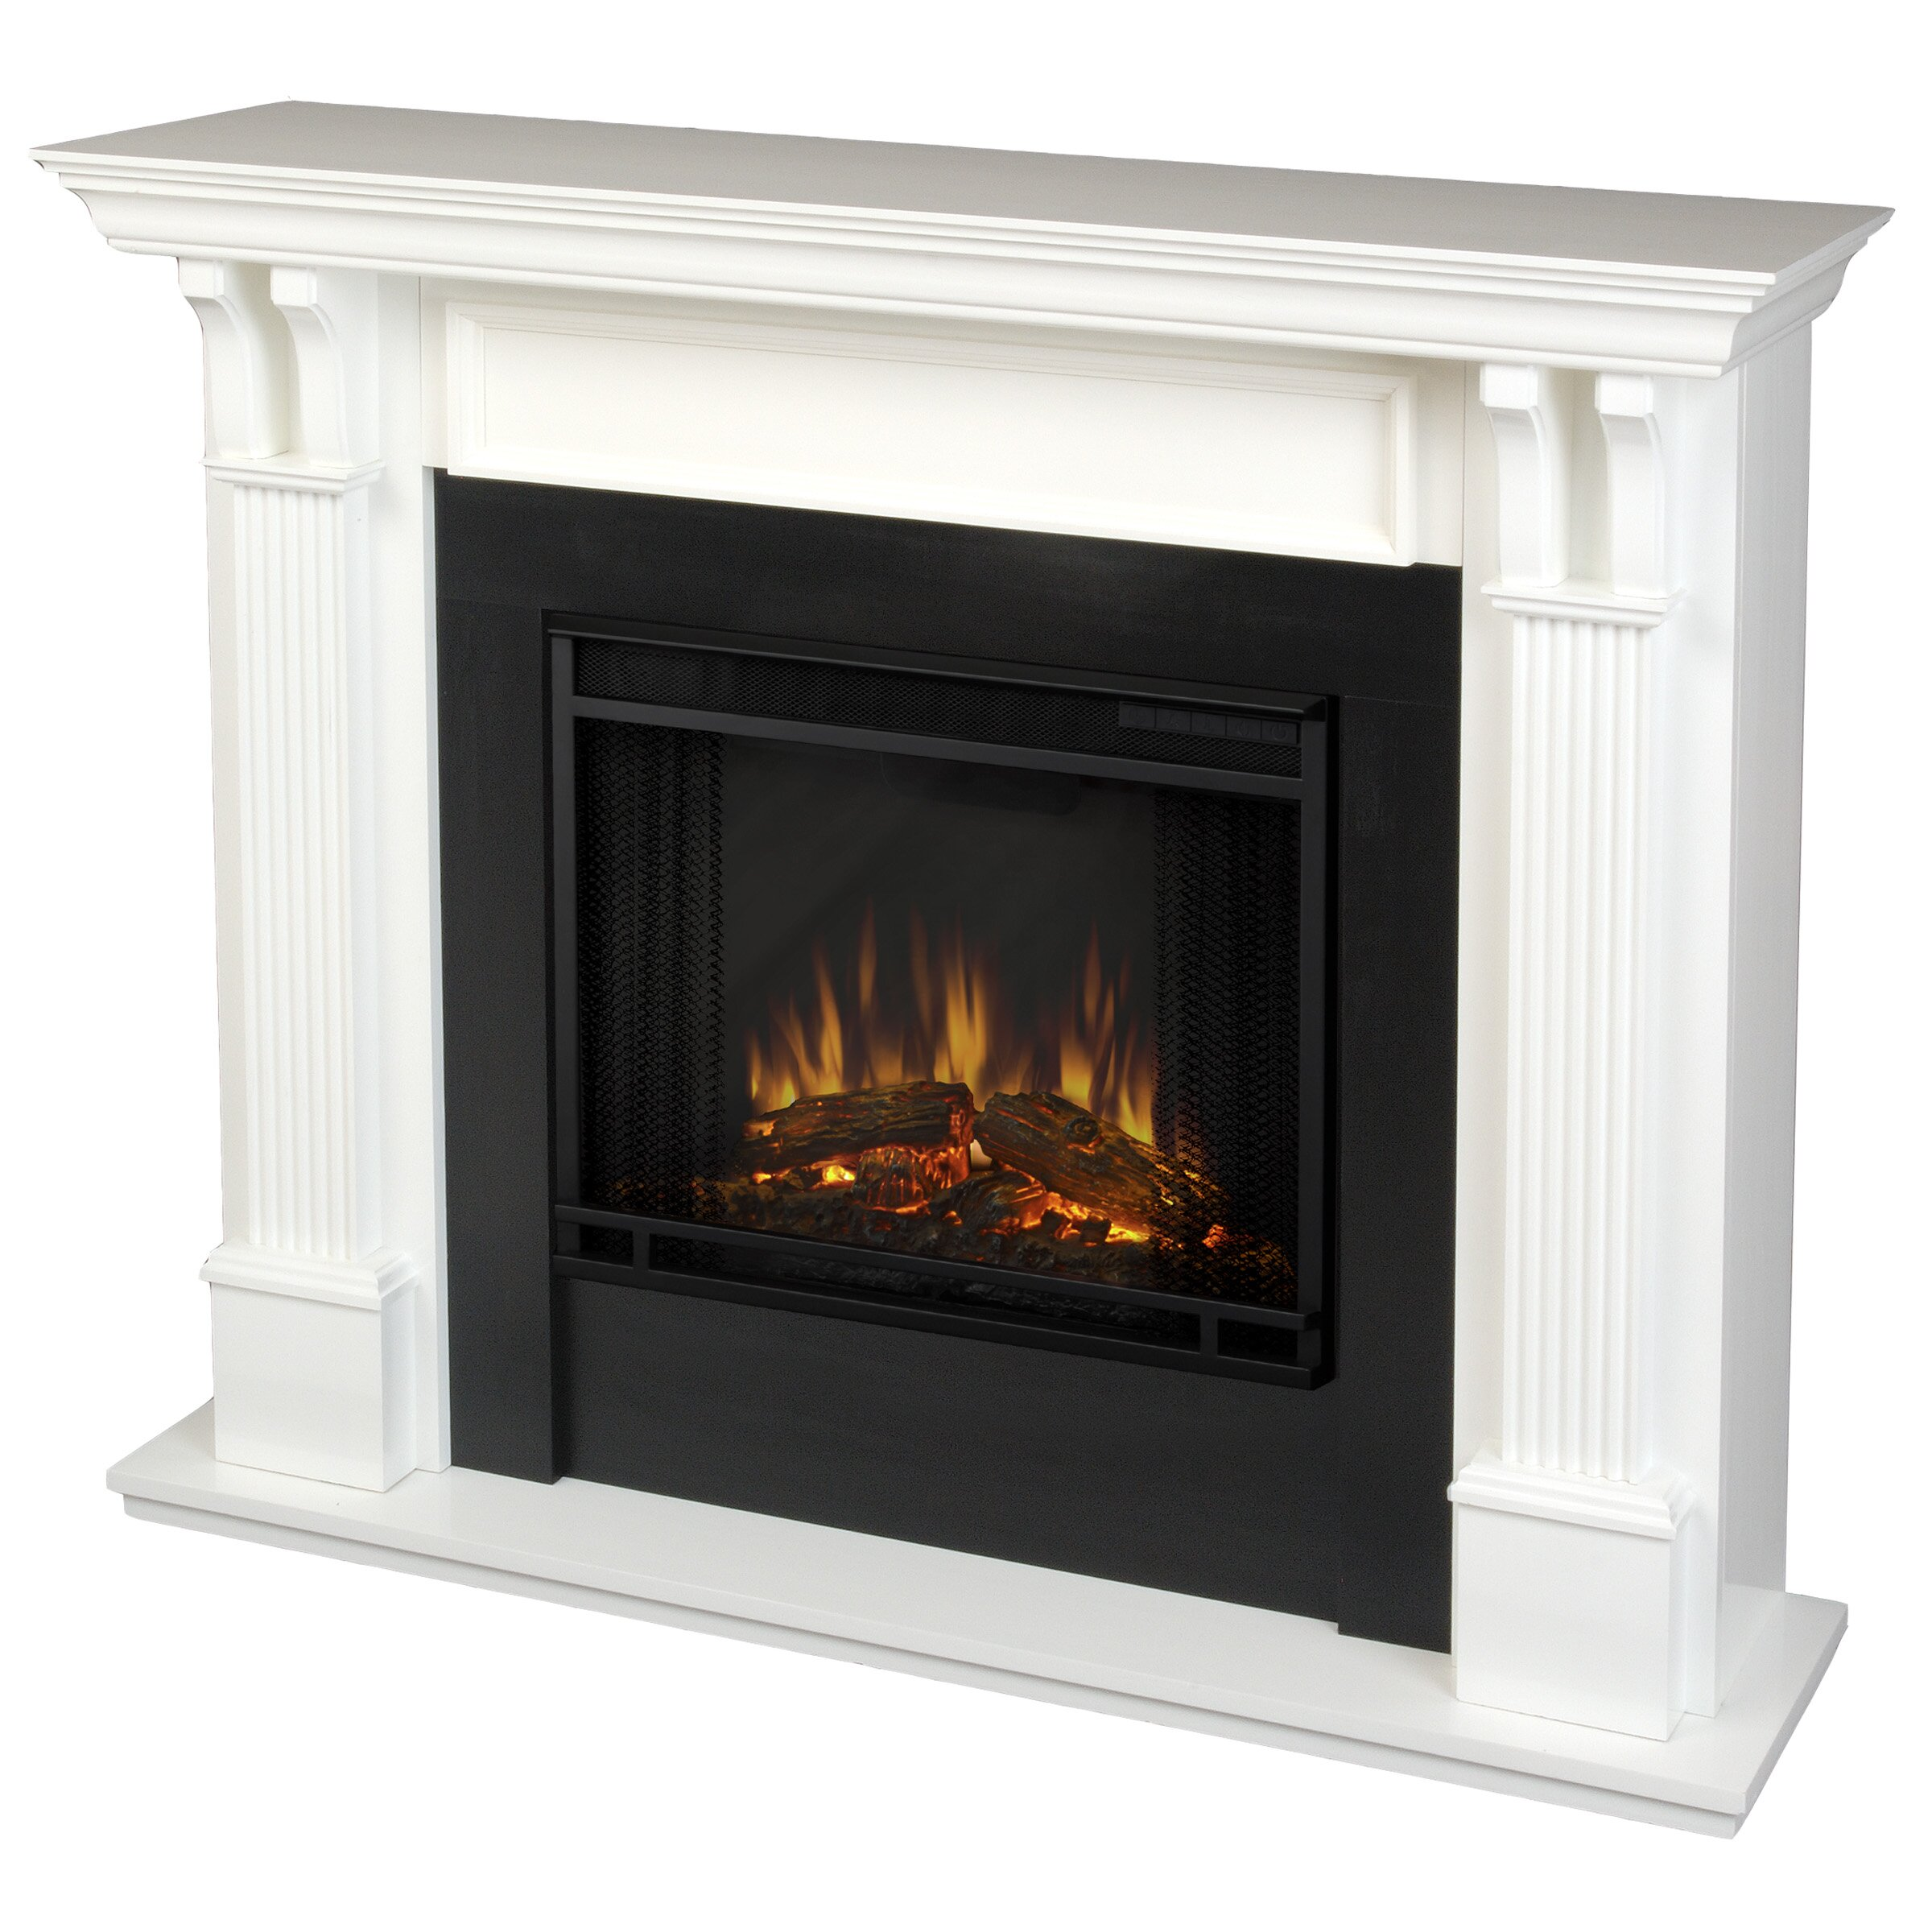 heating cooling all indoor fireplaces real flame sku jfp1324